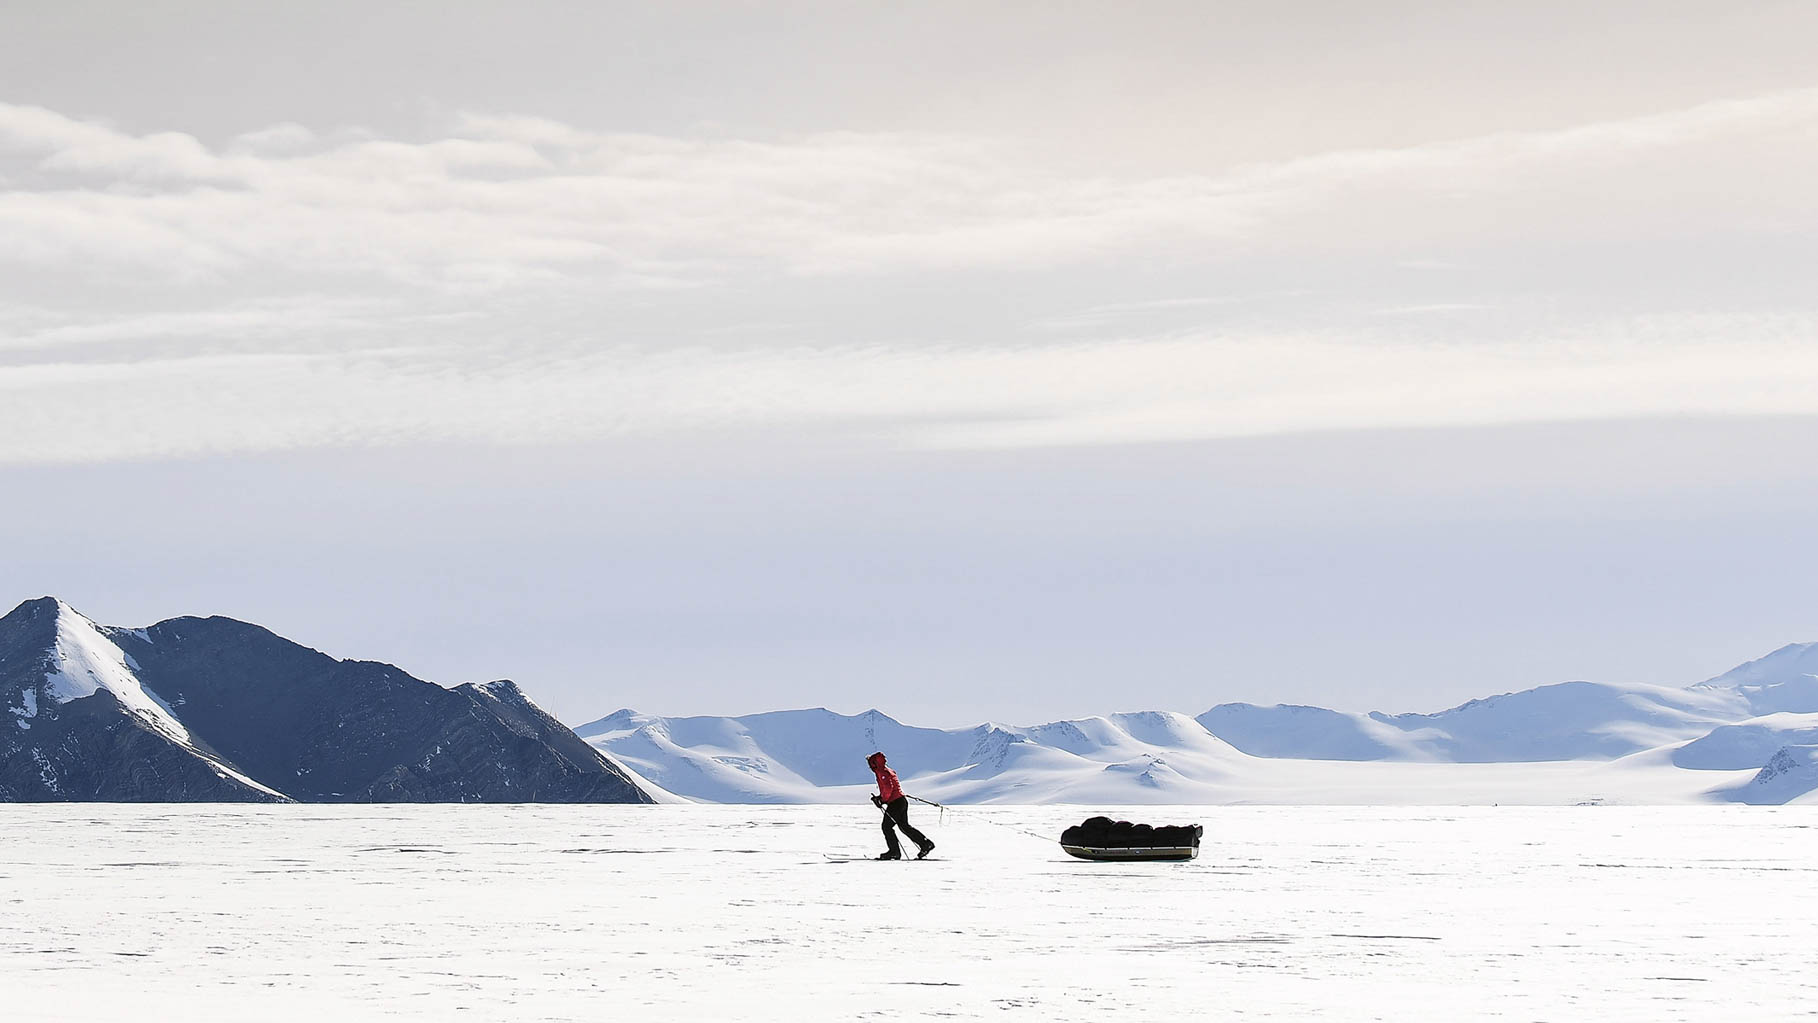 Person pulling sled across frozen tundra in front of mountains.